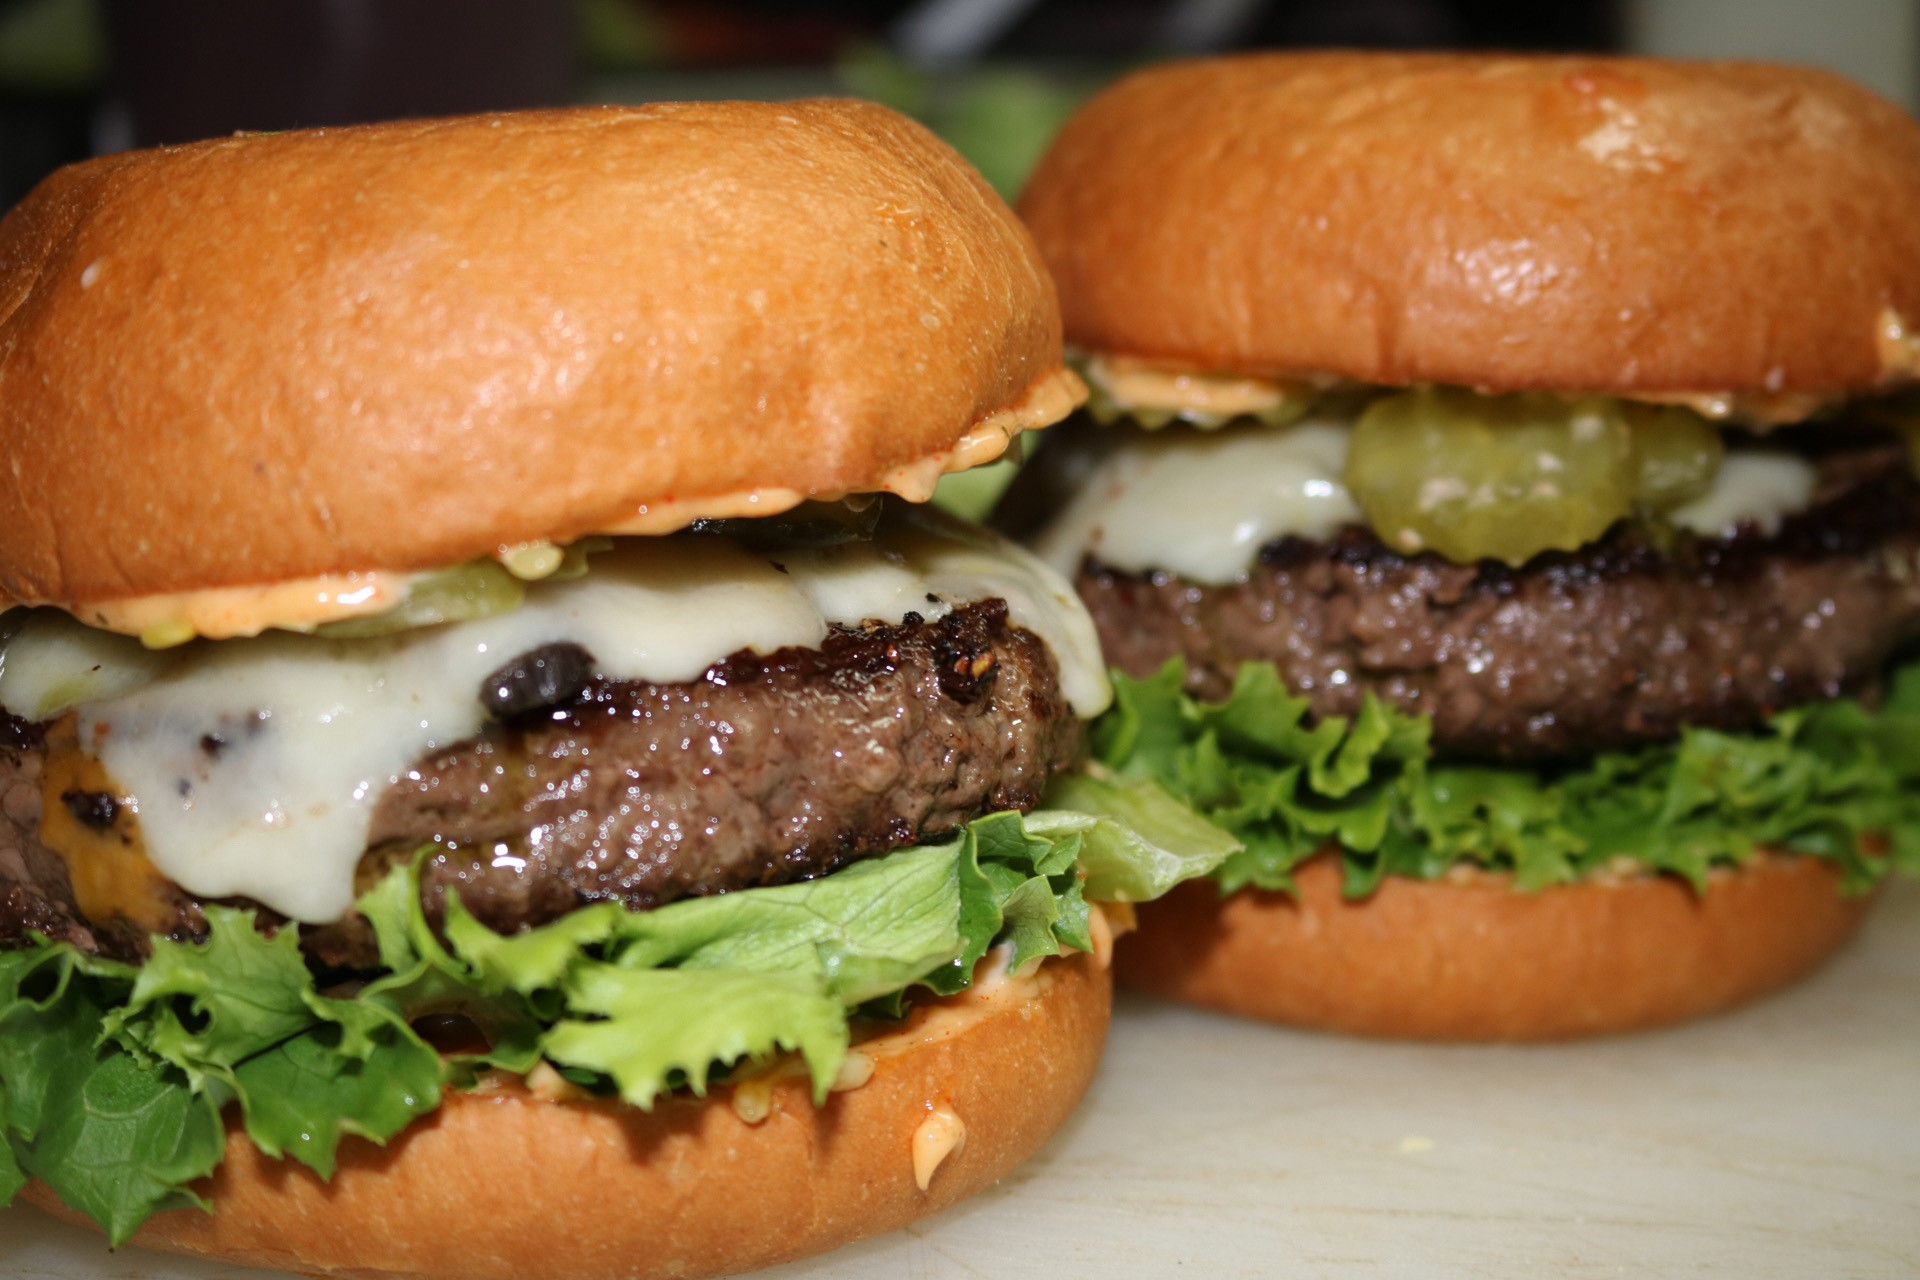 THE MEDIC – Wagyu Beef Patty, Grilled Mushrooms, Swiss Cheese, Green Leaf, Pickles Hidden Sauce, Basil Pesto